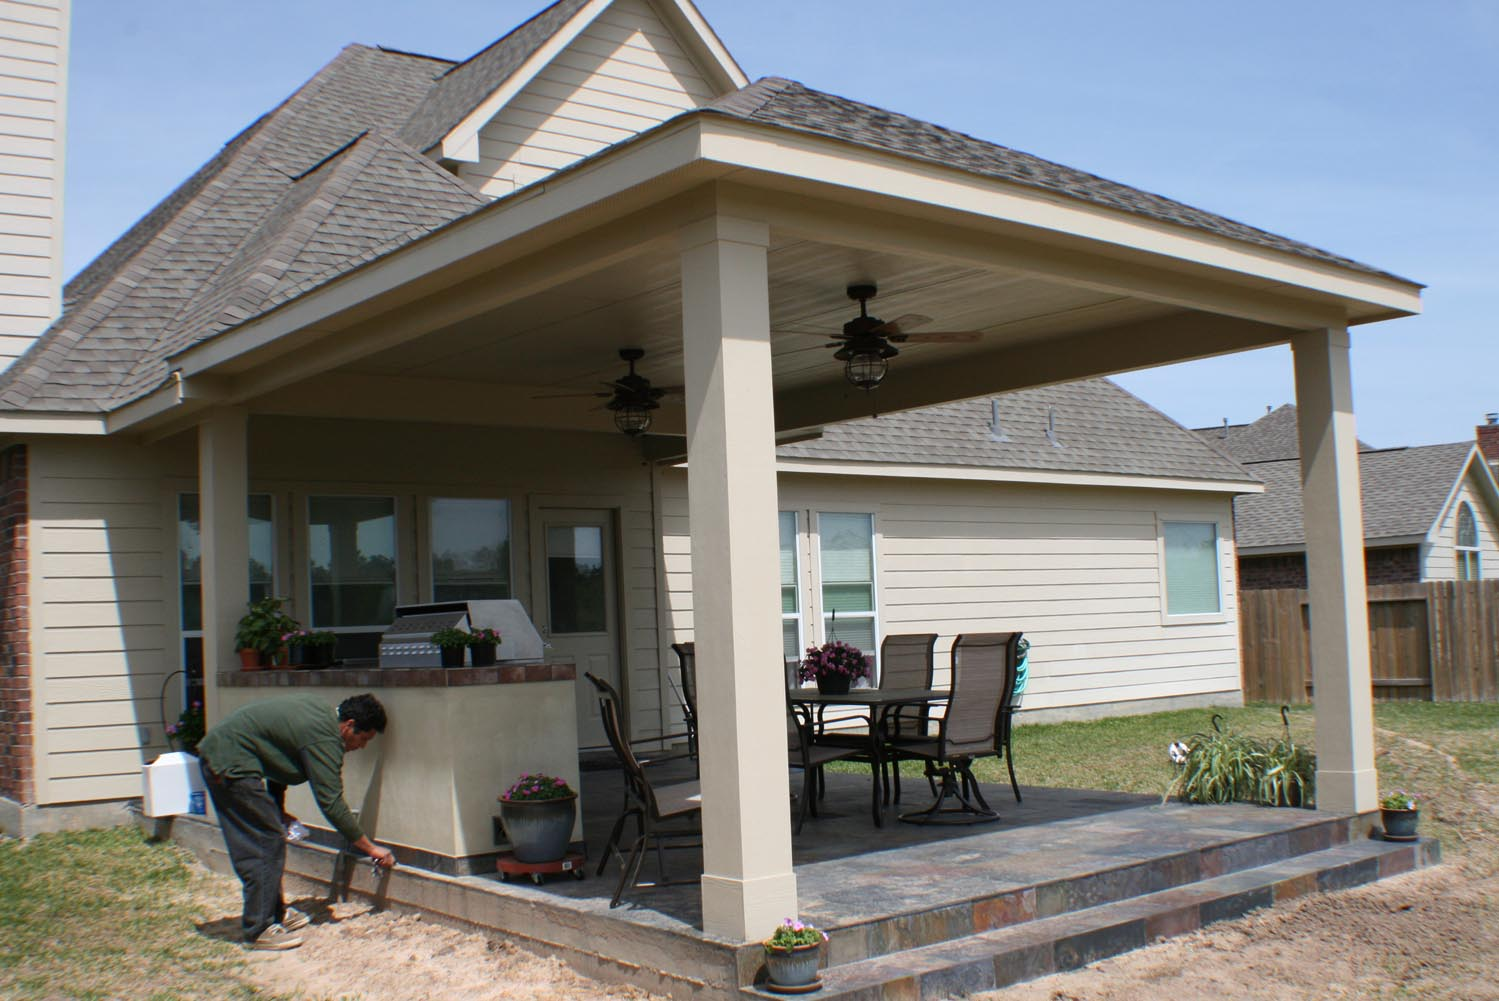 16 by 20 Patio Cover + Outdoor Kitchen - HHI Patio Covers on Backyard Patio Cover  id=66306